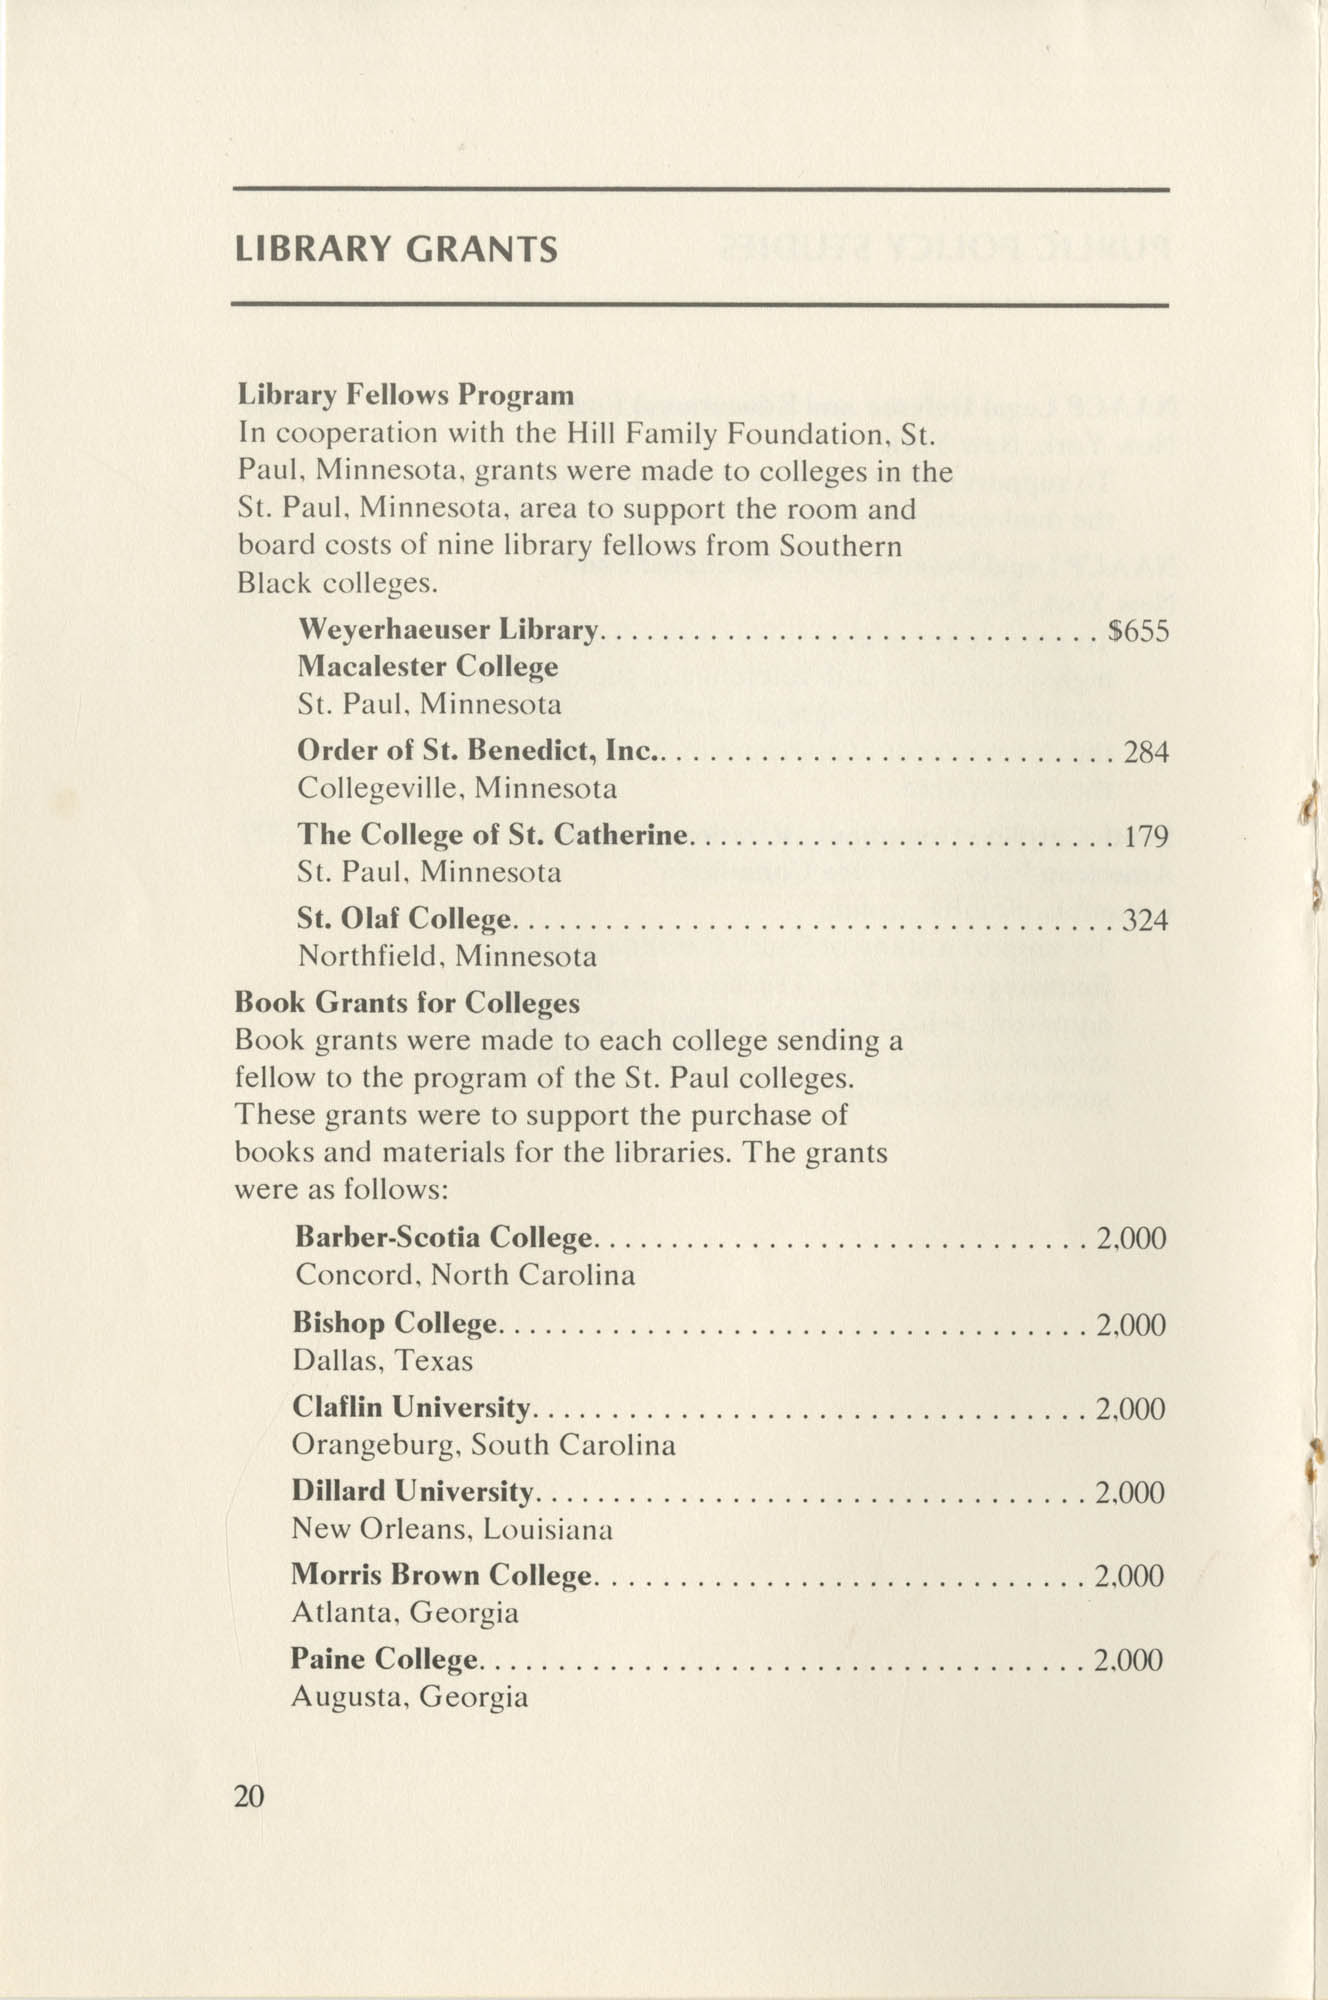 Southern Education Foundation, Annual Report 1971-1972, Page 20